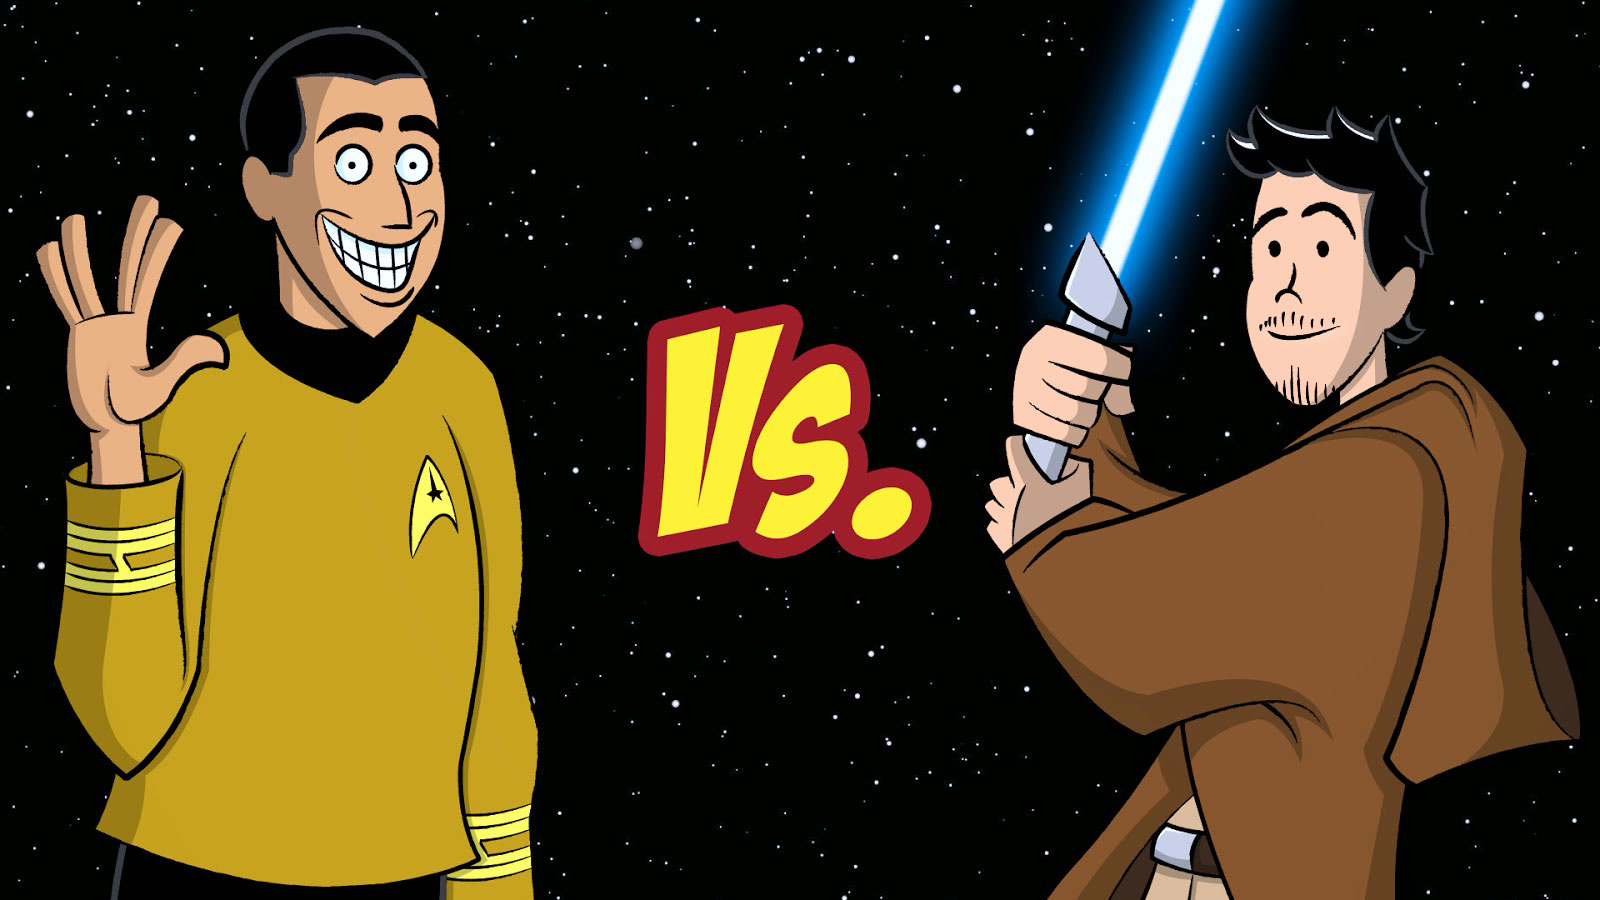 star trek vs star wars essay David brin continues his critique of the star wars franchise: wouldn't you love -  just once in  this saga from others that seem superficially similar, like star trek   a collection of my book reviews, introductions and essays on popular culture,  which  here) was originally published on saloncom as 'star wars' despots vs.